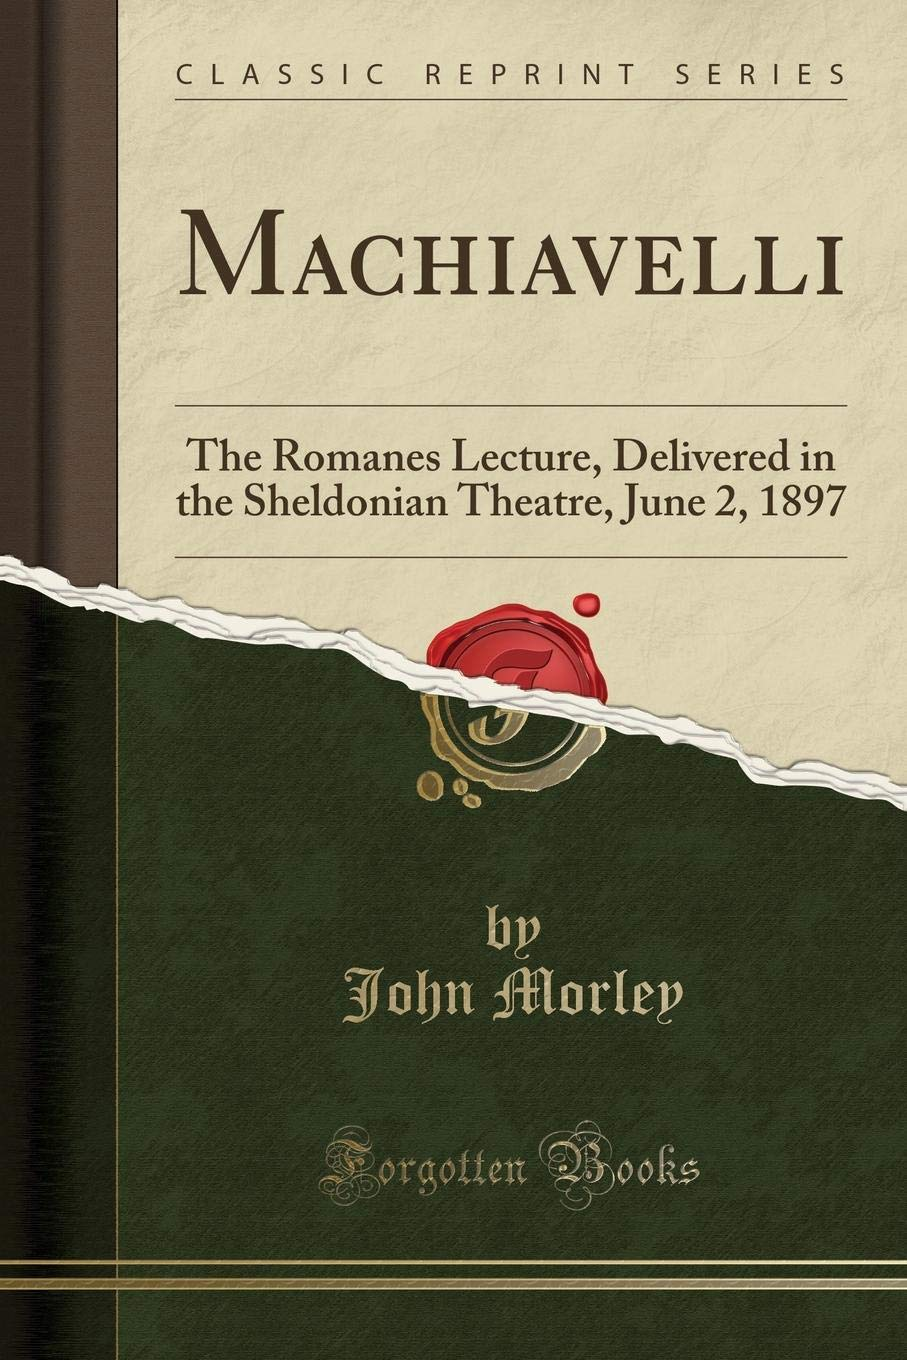 Download Machiavelli: The Romanes Lecture, Delivered in the Sheldonian Theatre, June 2, 1897 (Classic Reprint) ebook